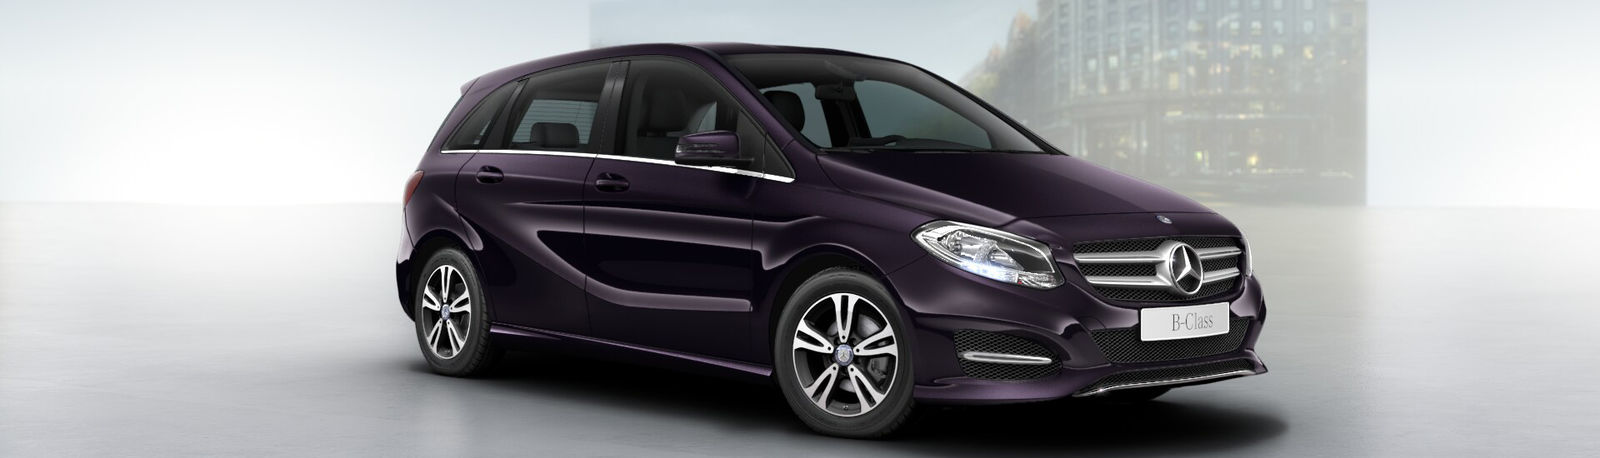 Mercedes b class mpv colours guide and prices carwow for Mercedes benz color chart